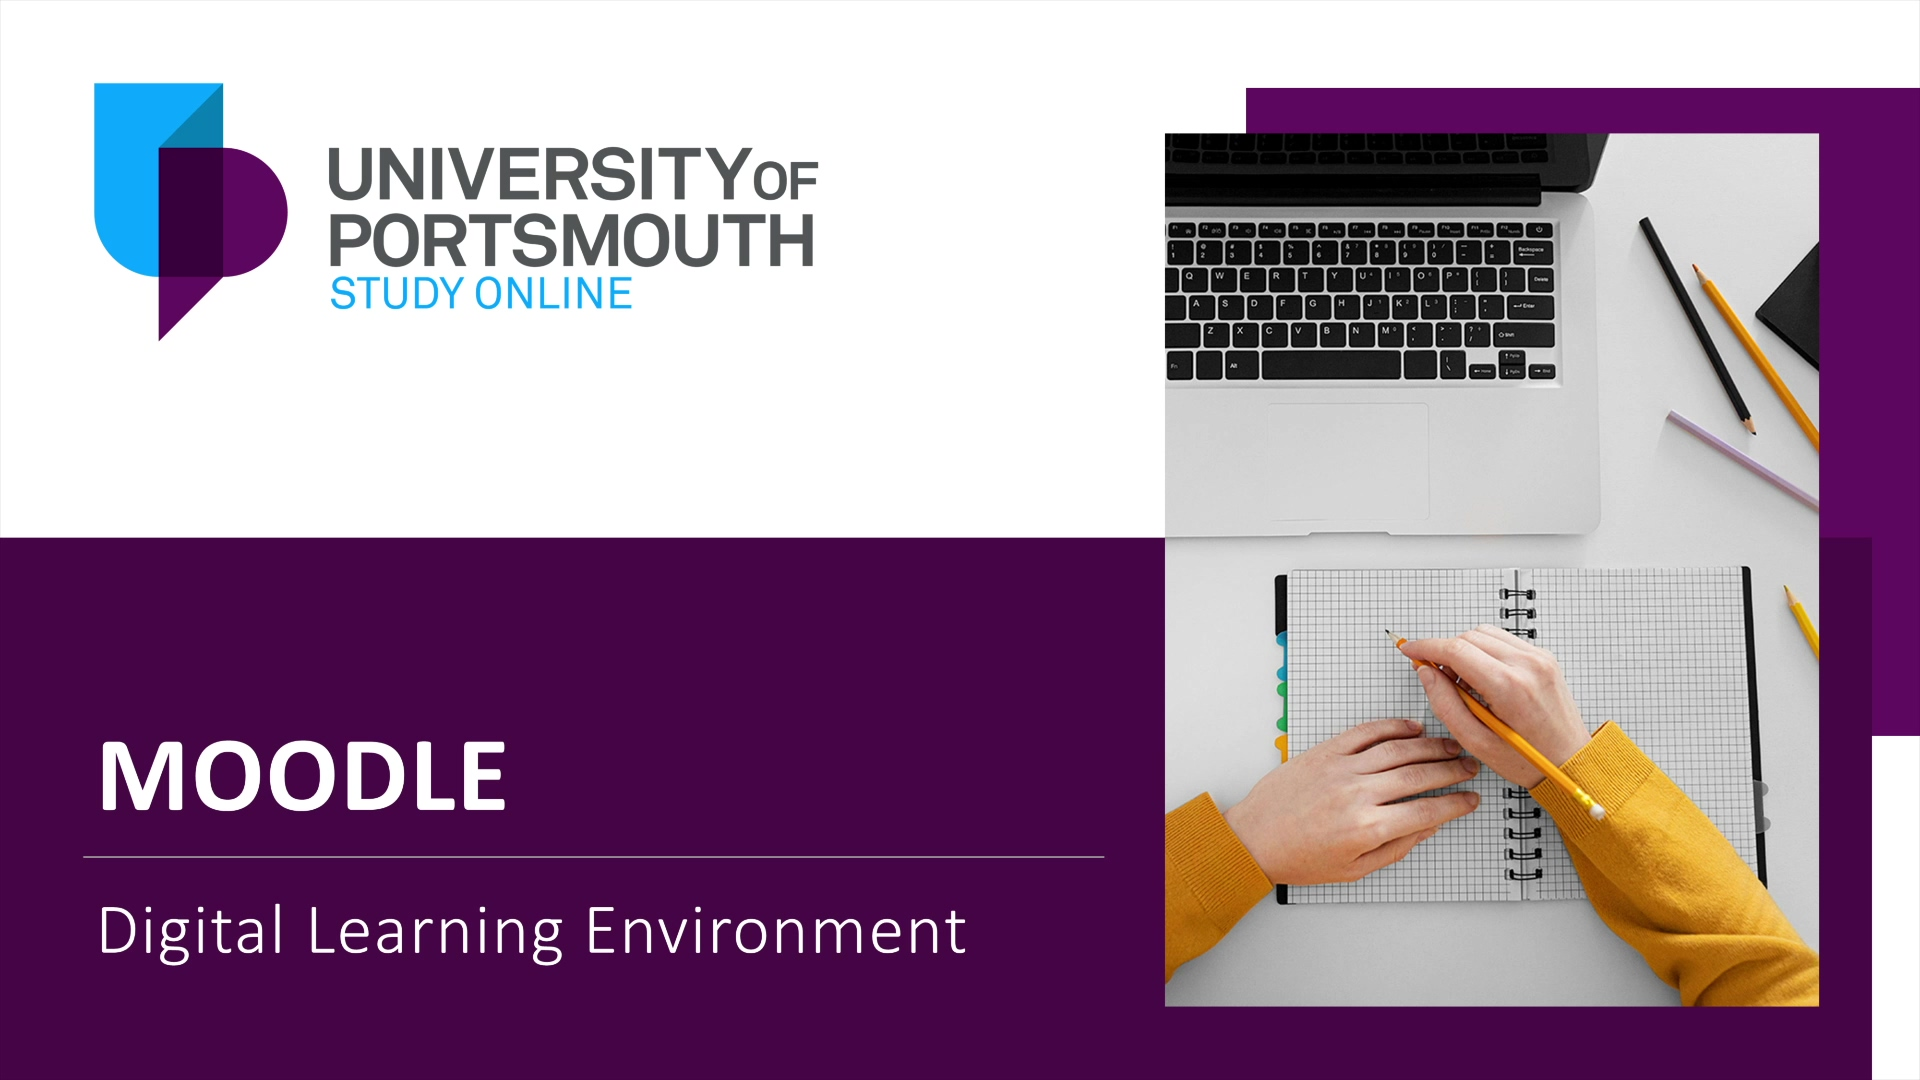 Moodle - The University of Portsmouth Online Digital Learning Environment